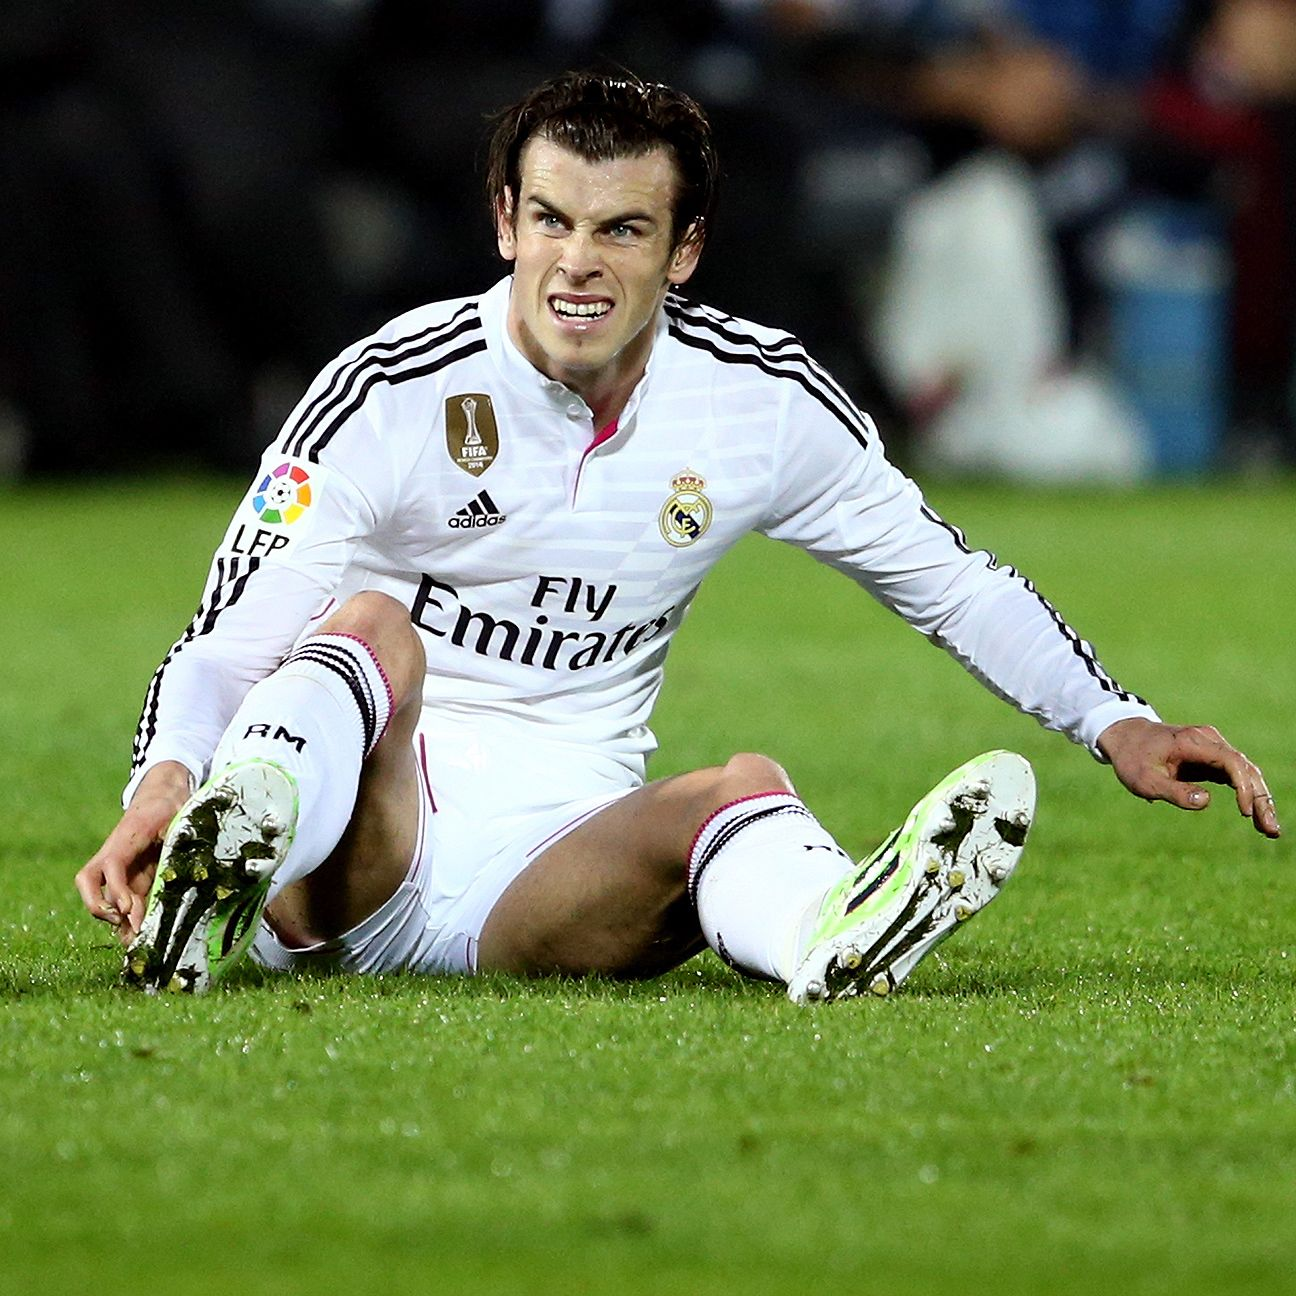 Gareth Bale and the rest of Real's second-half substitutes never really found their footing against Milan.